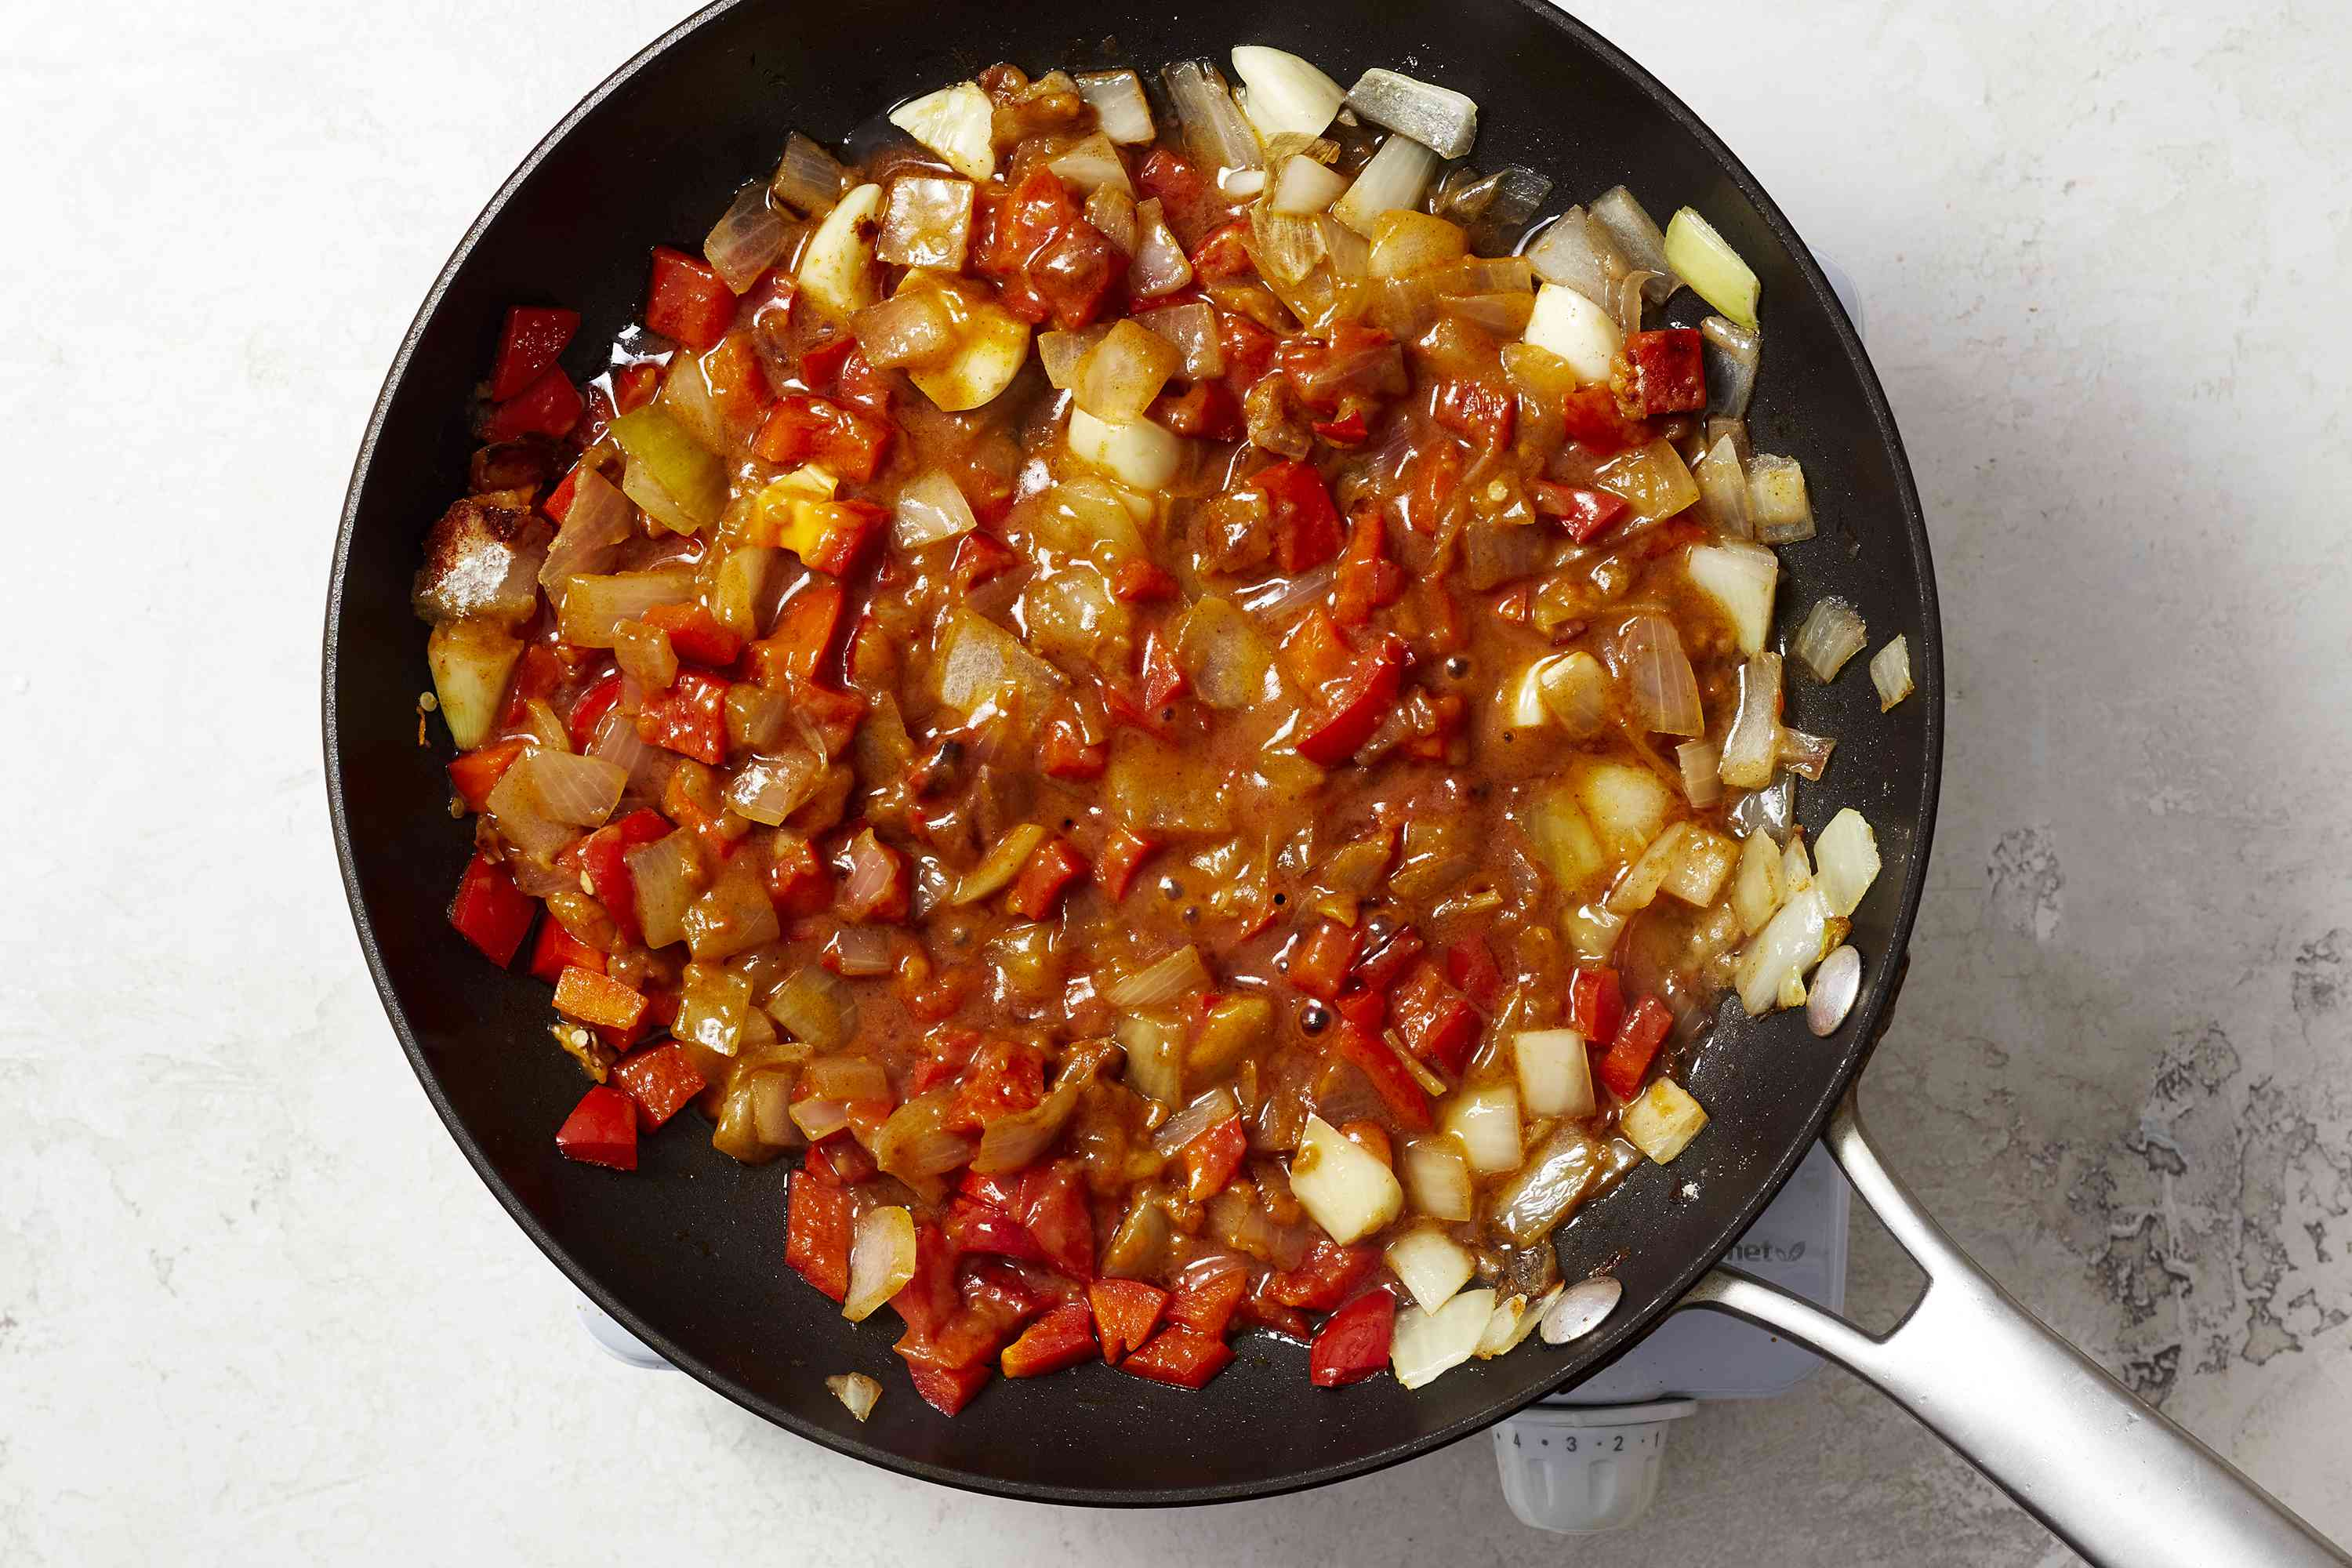 add sauce to the vegetable mixture in the pan